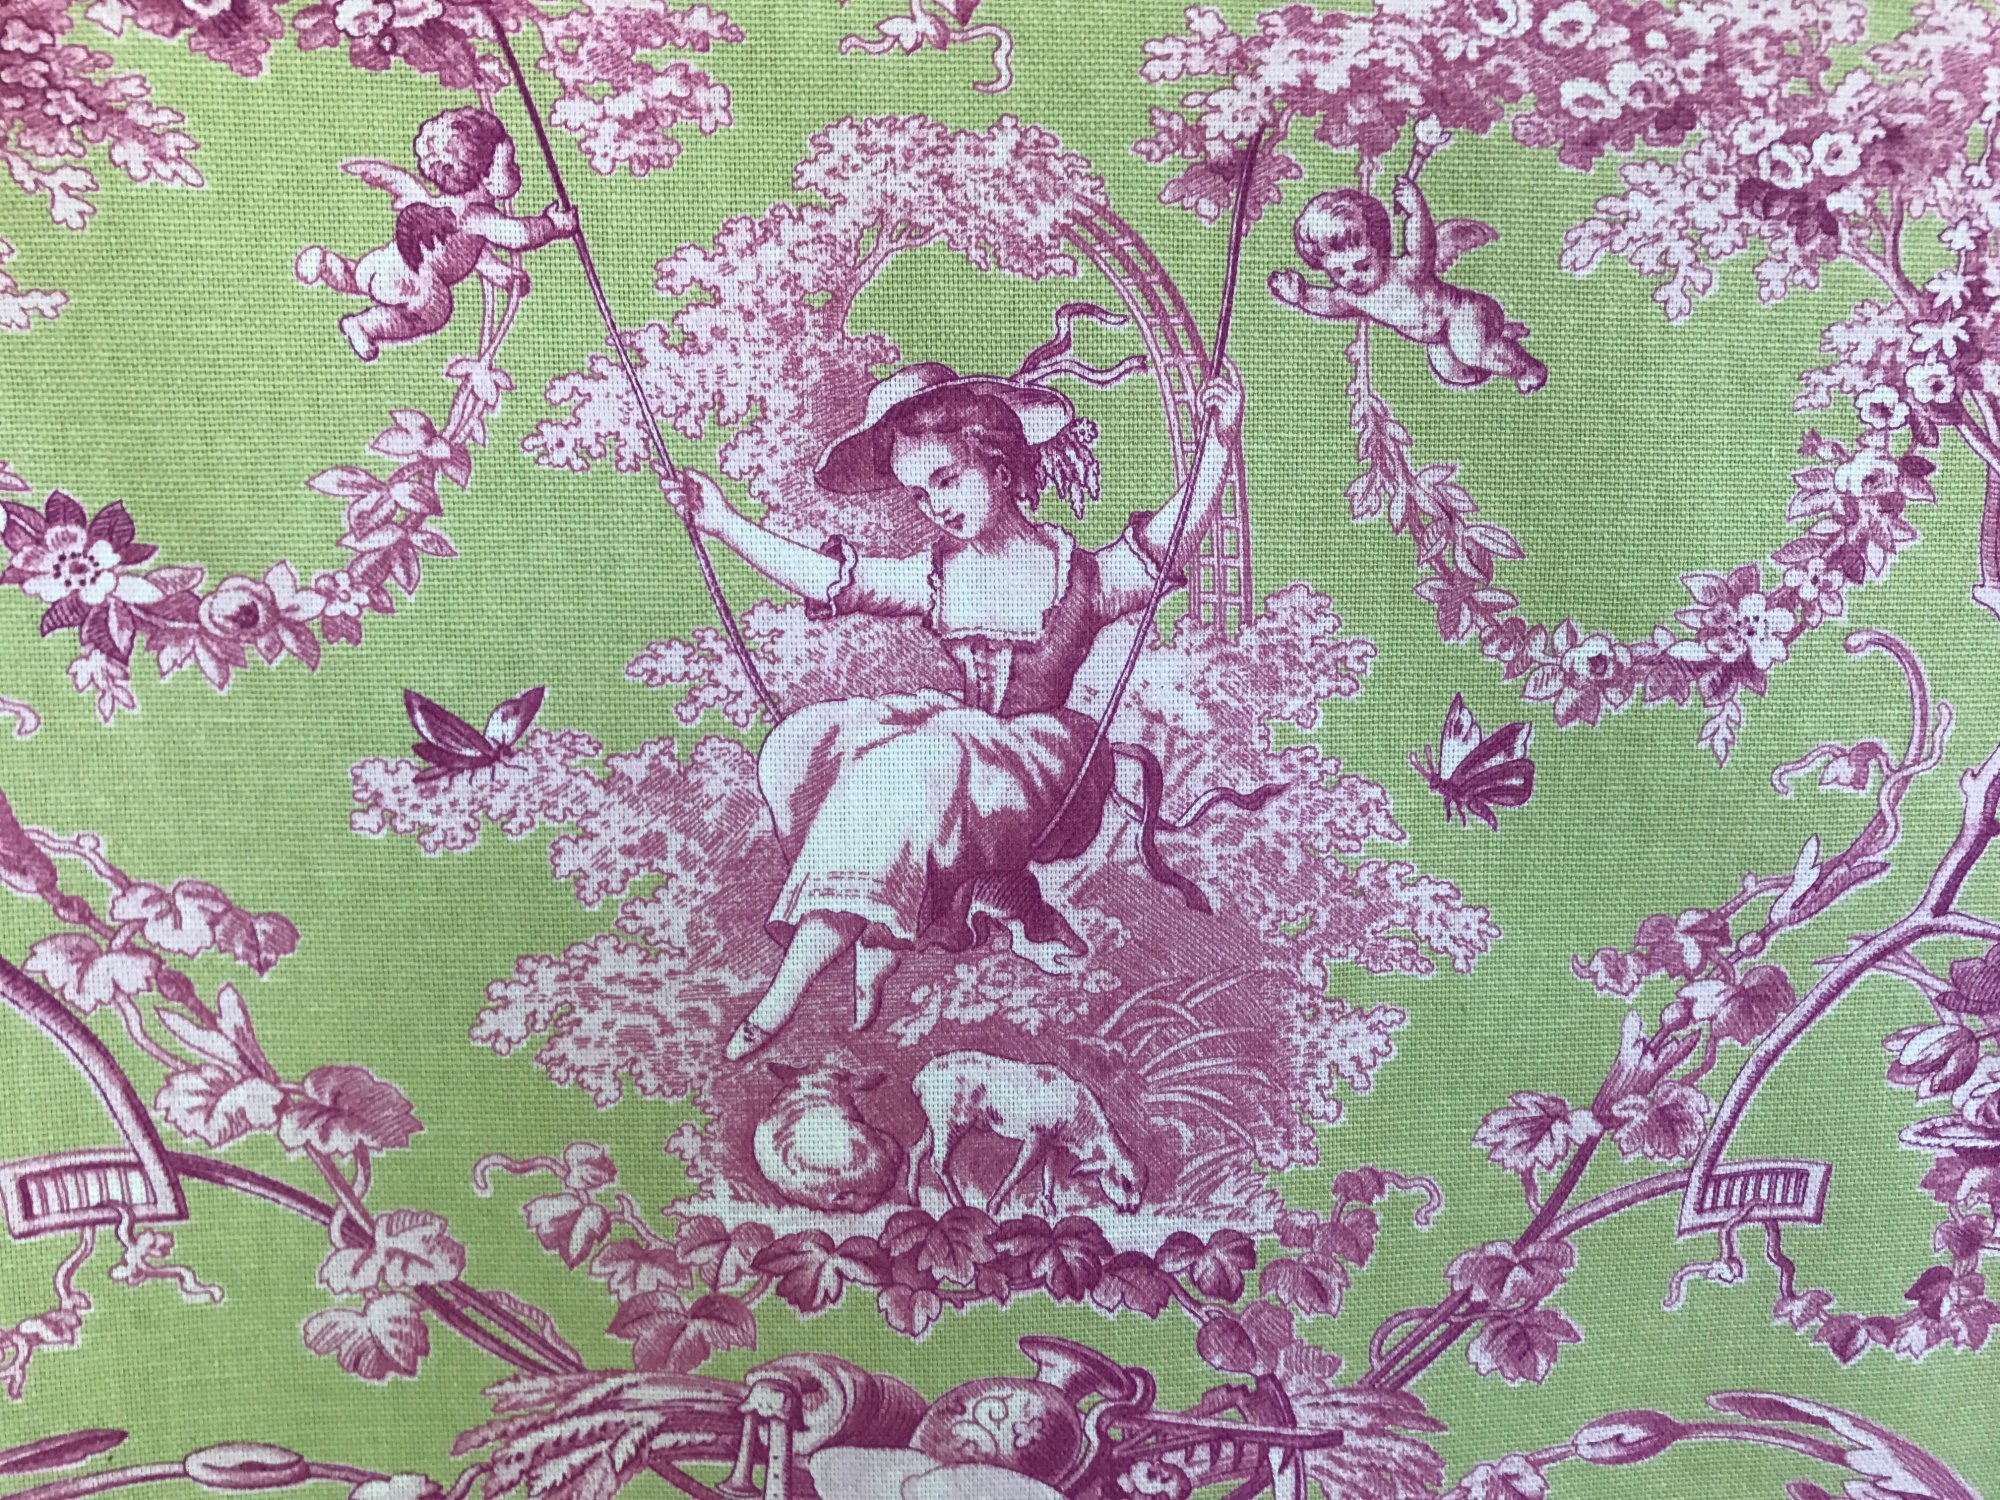 Green and pink Toile With Woman on swing